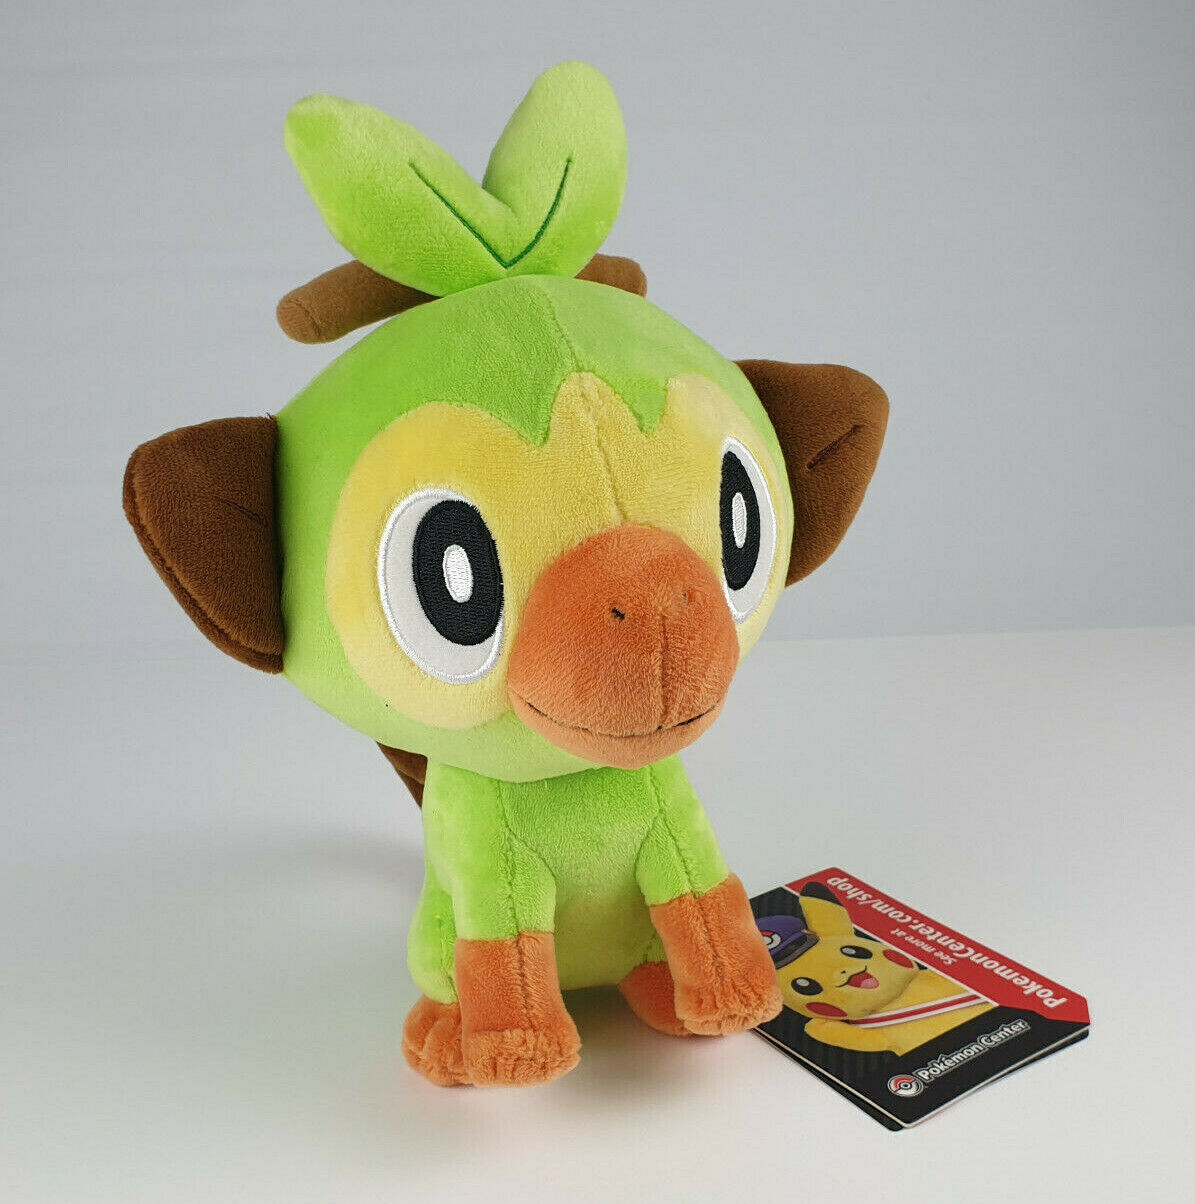 Mega Grooky – It evolves from thwackey starting at level 35.